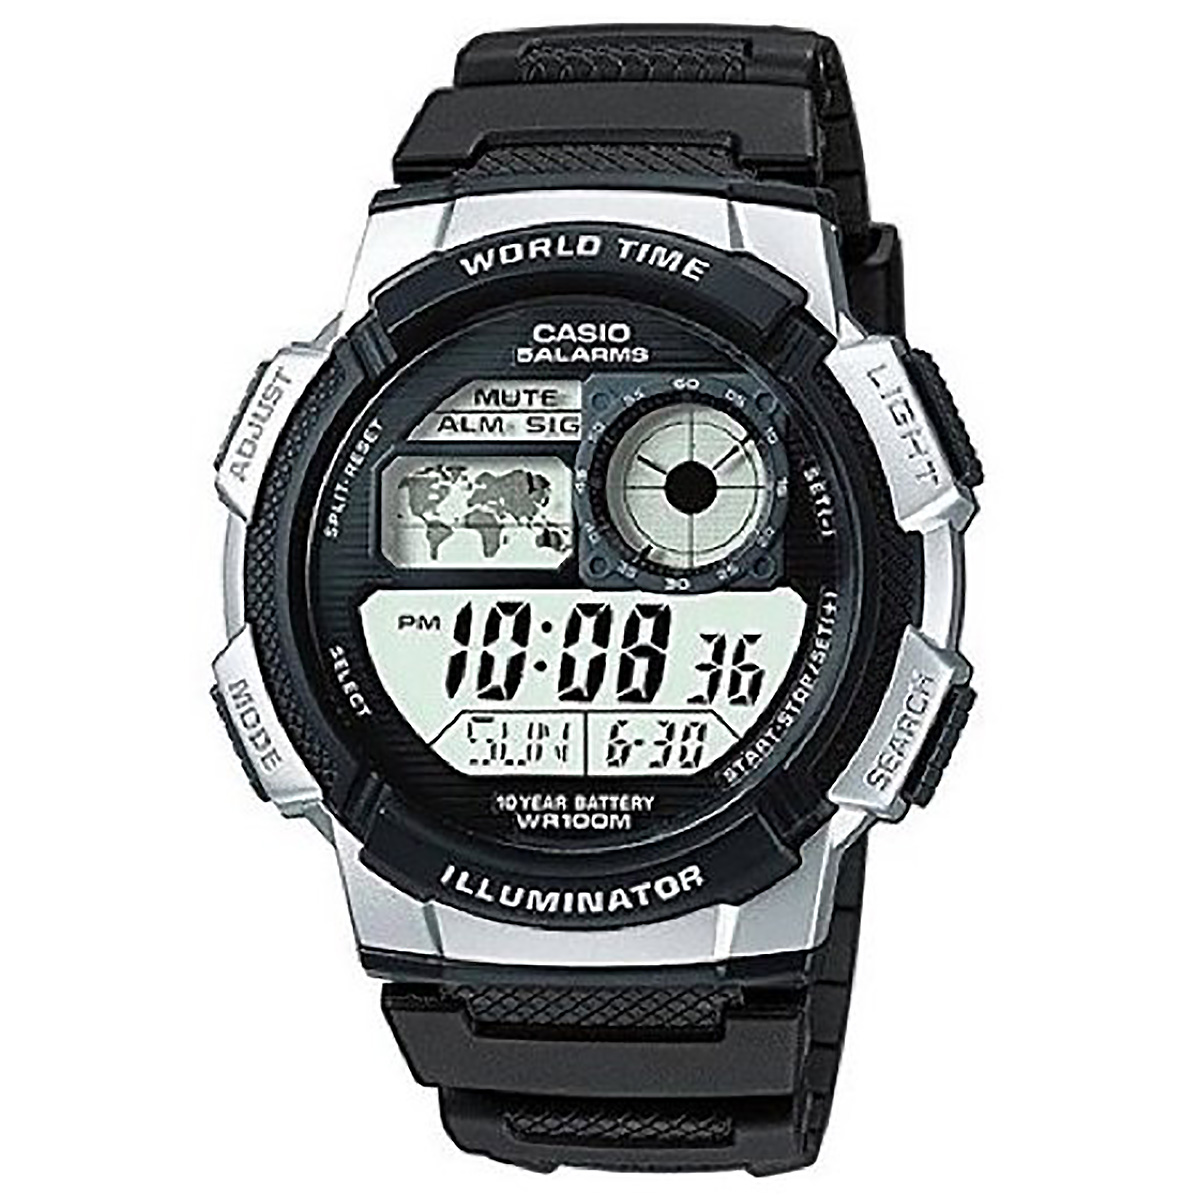 casio digitaluhr ae 1000w 1a2 armbanduhr herren schwarz. Black Bedroom Furniture Sets. Home Design Ideas